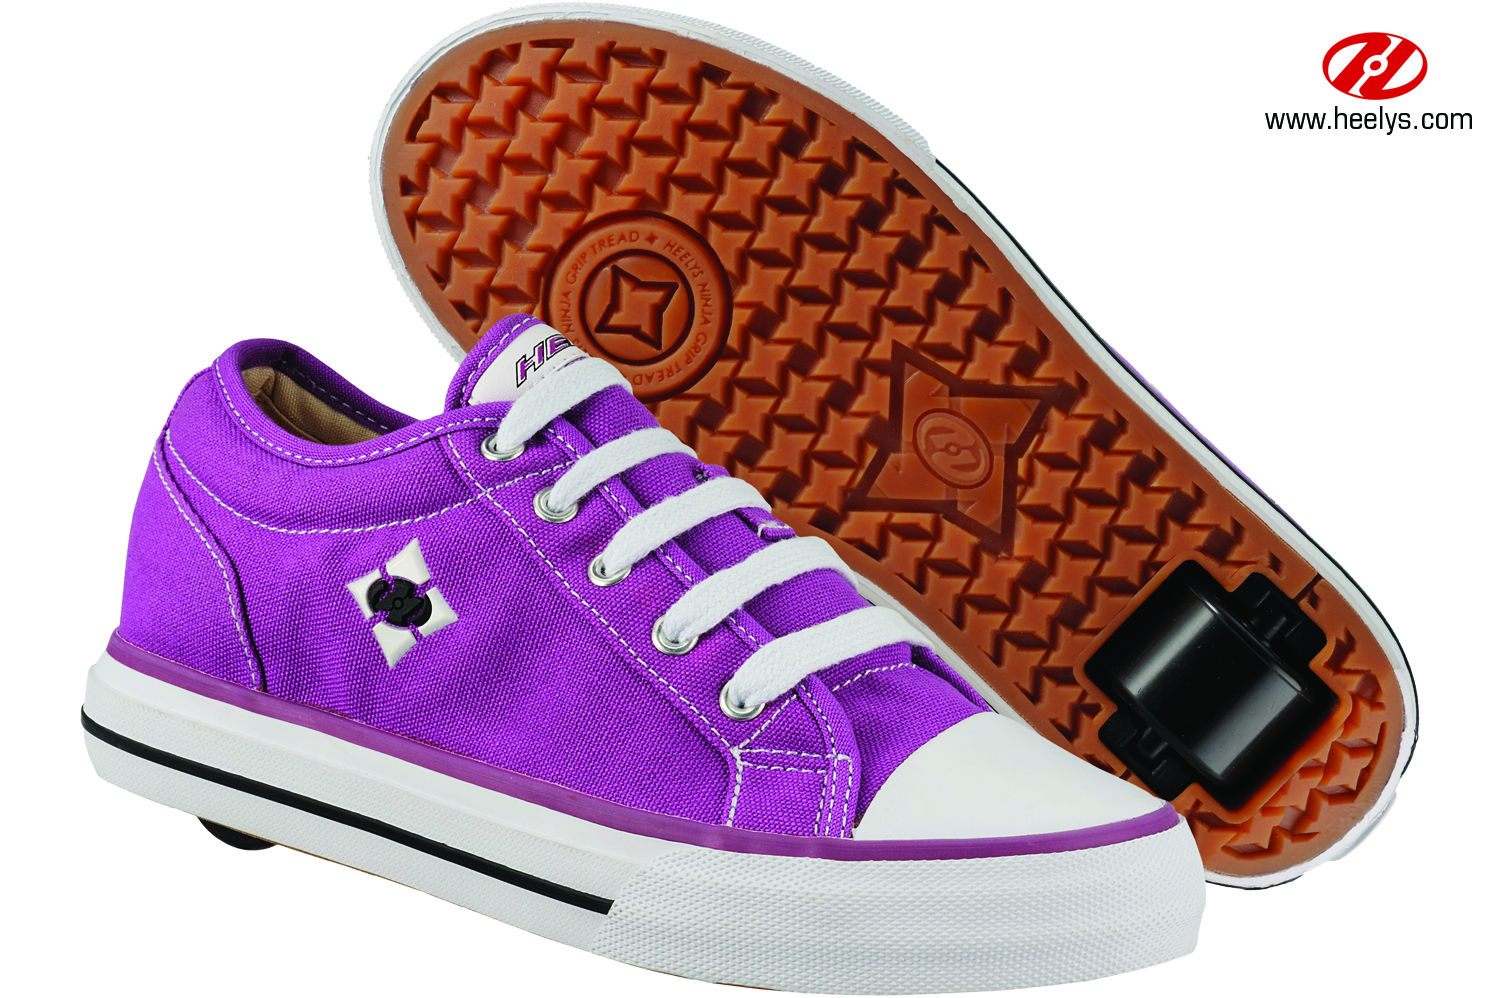 Heely skate shoes reviews - Heelys Review First There Were Roller Skates